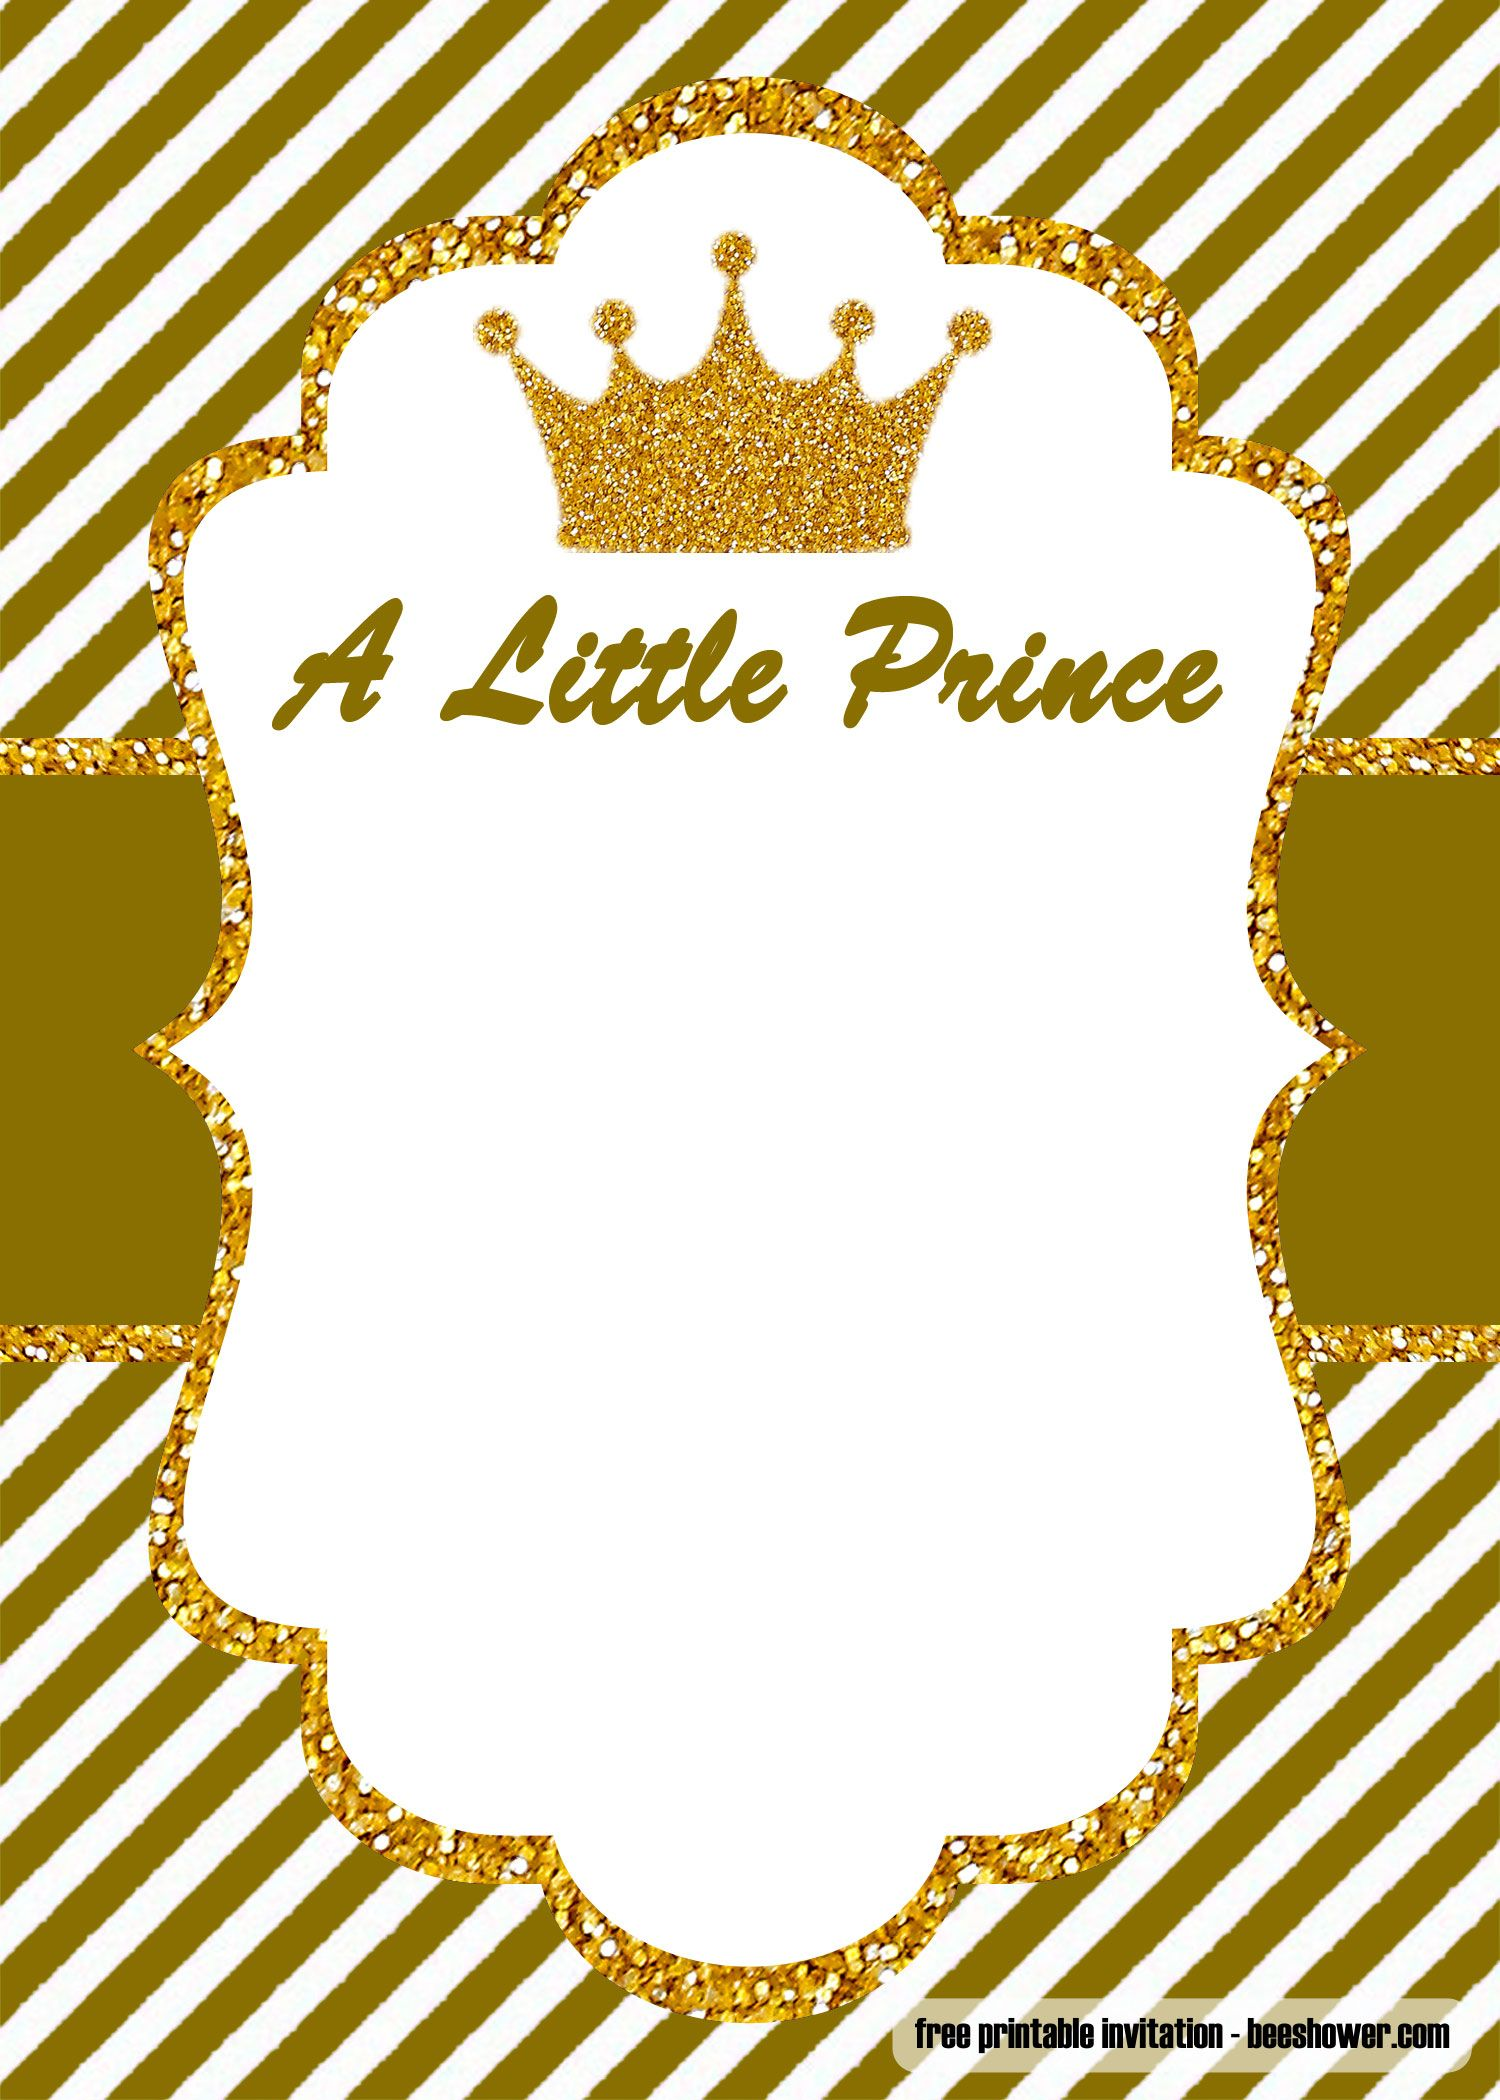 Download FREE Little Prince Baby Shower Invitations